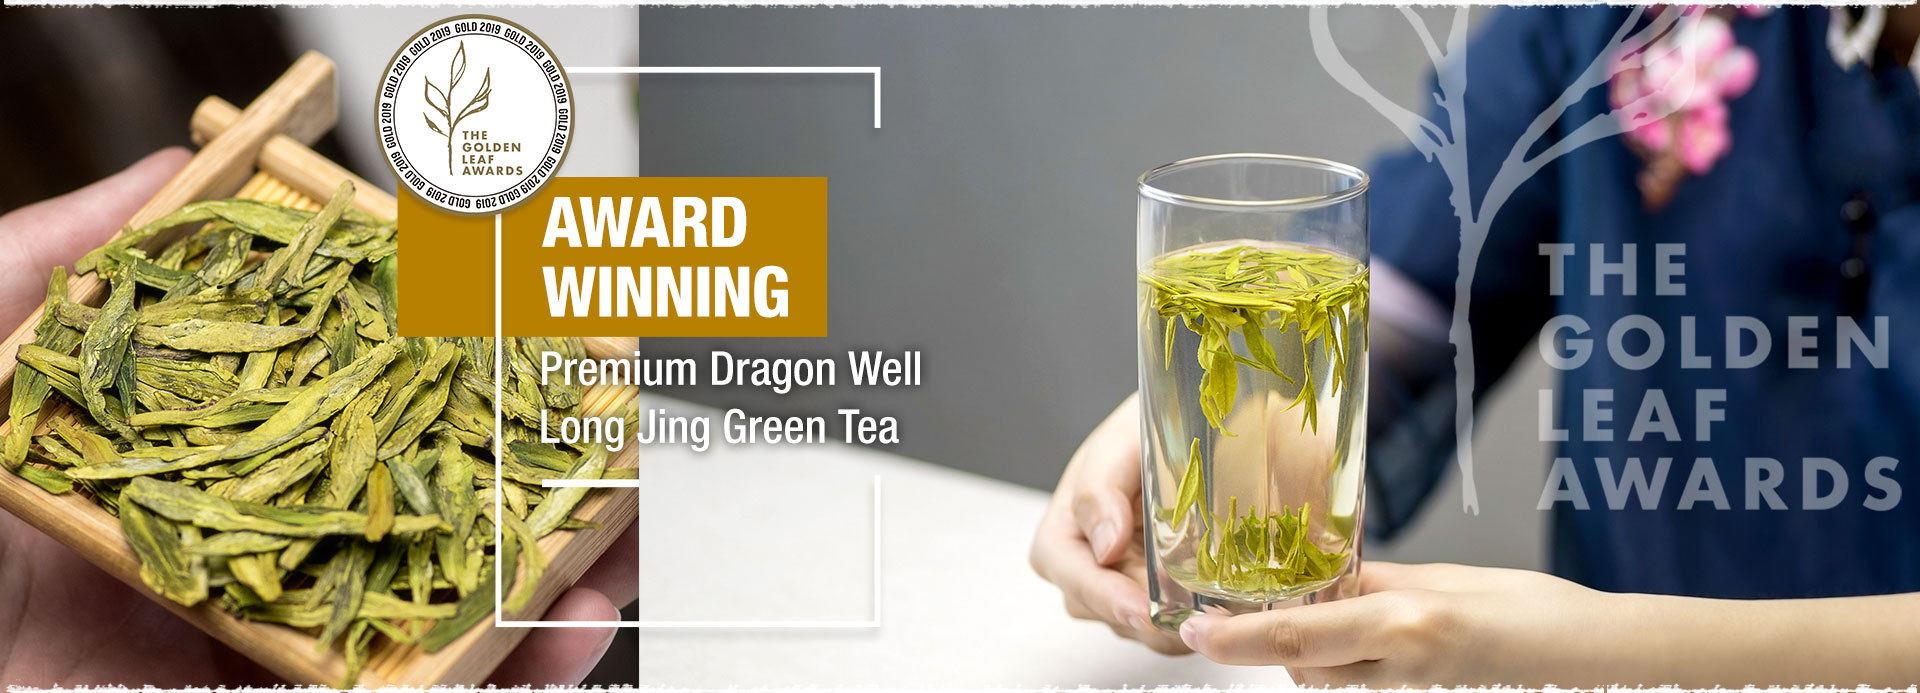 Congrats! Premium Dragon Well Long Jing Green Tea won the Gold Medal